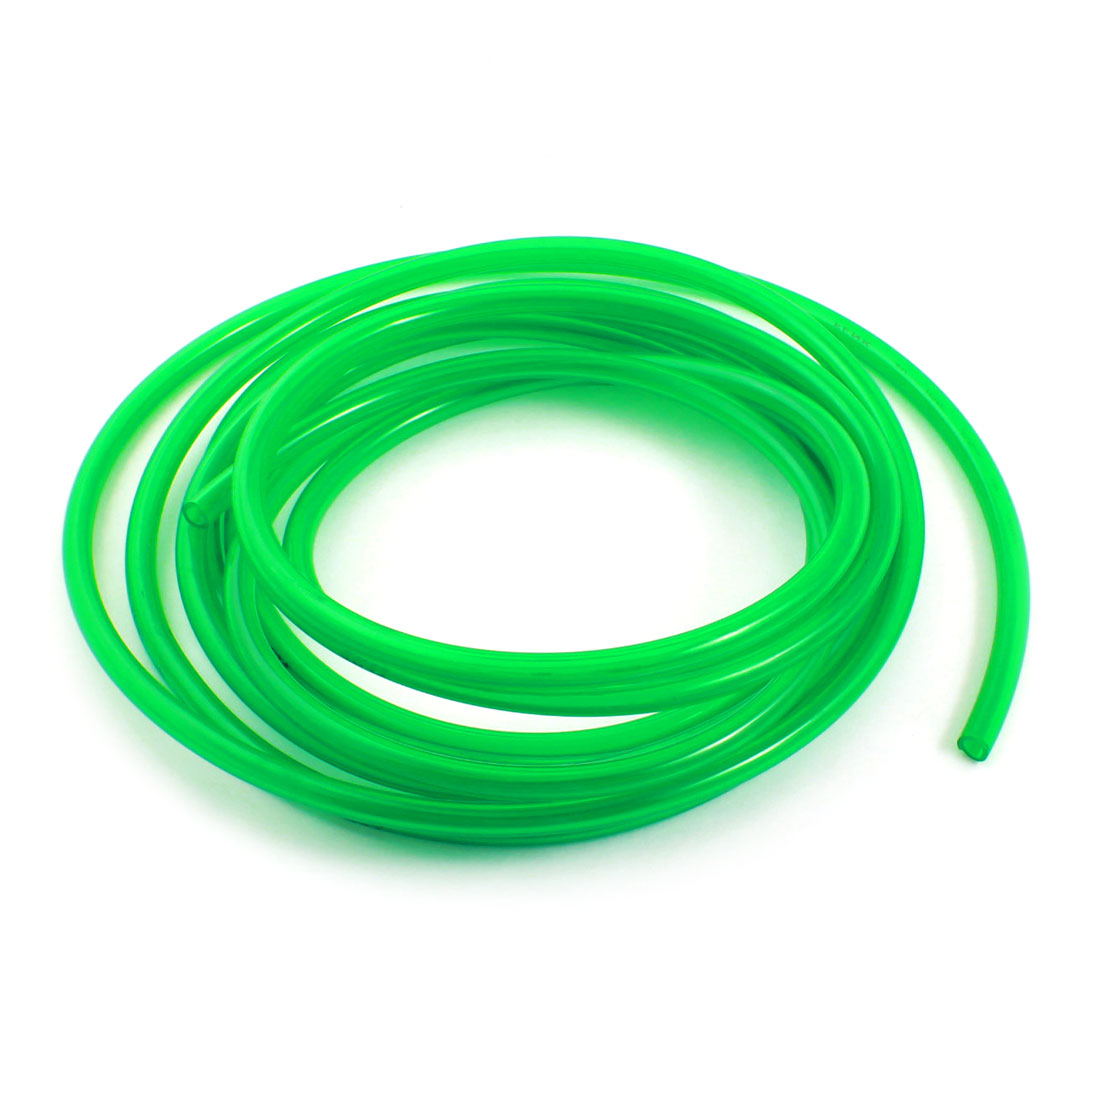 Pneumatic 5x8mm Fuel Gas Quick Fittings Connection PU Line Tube 5M Clear Green